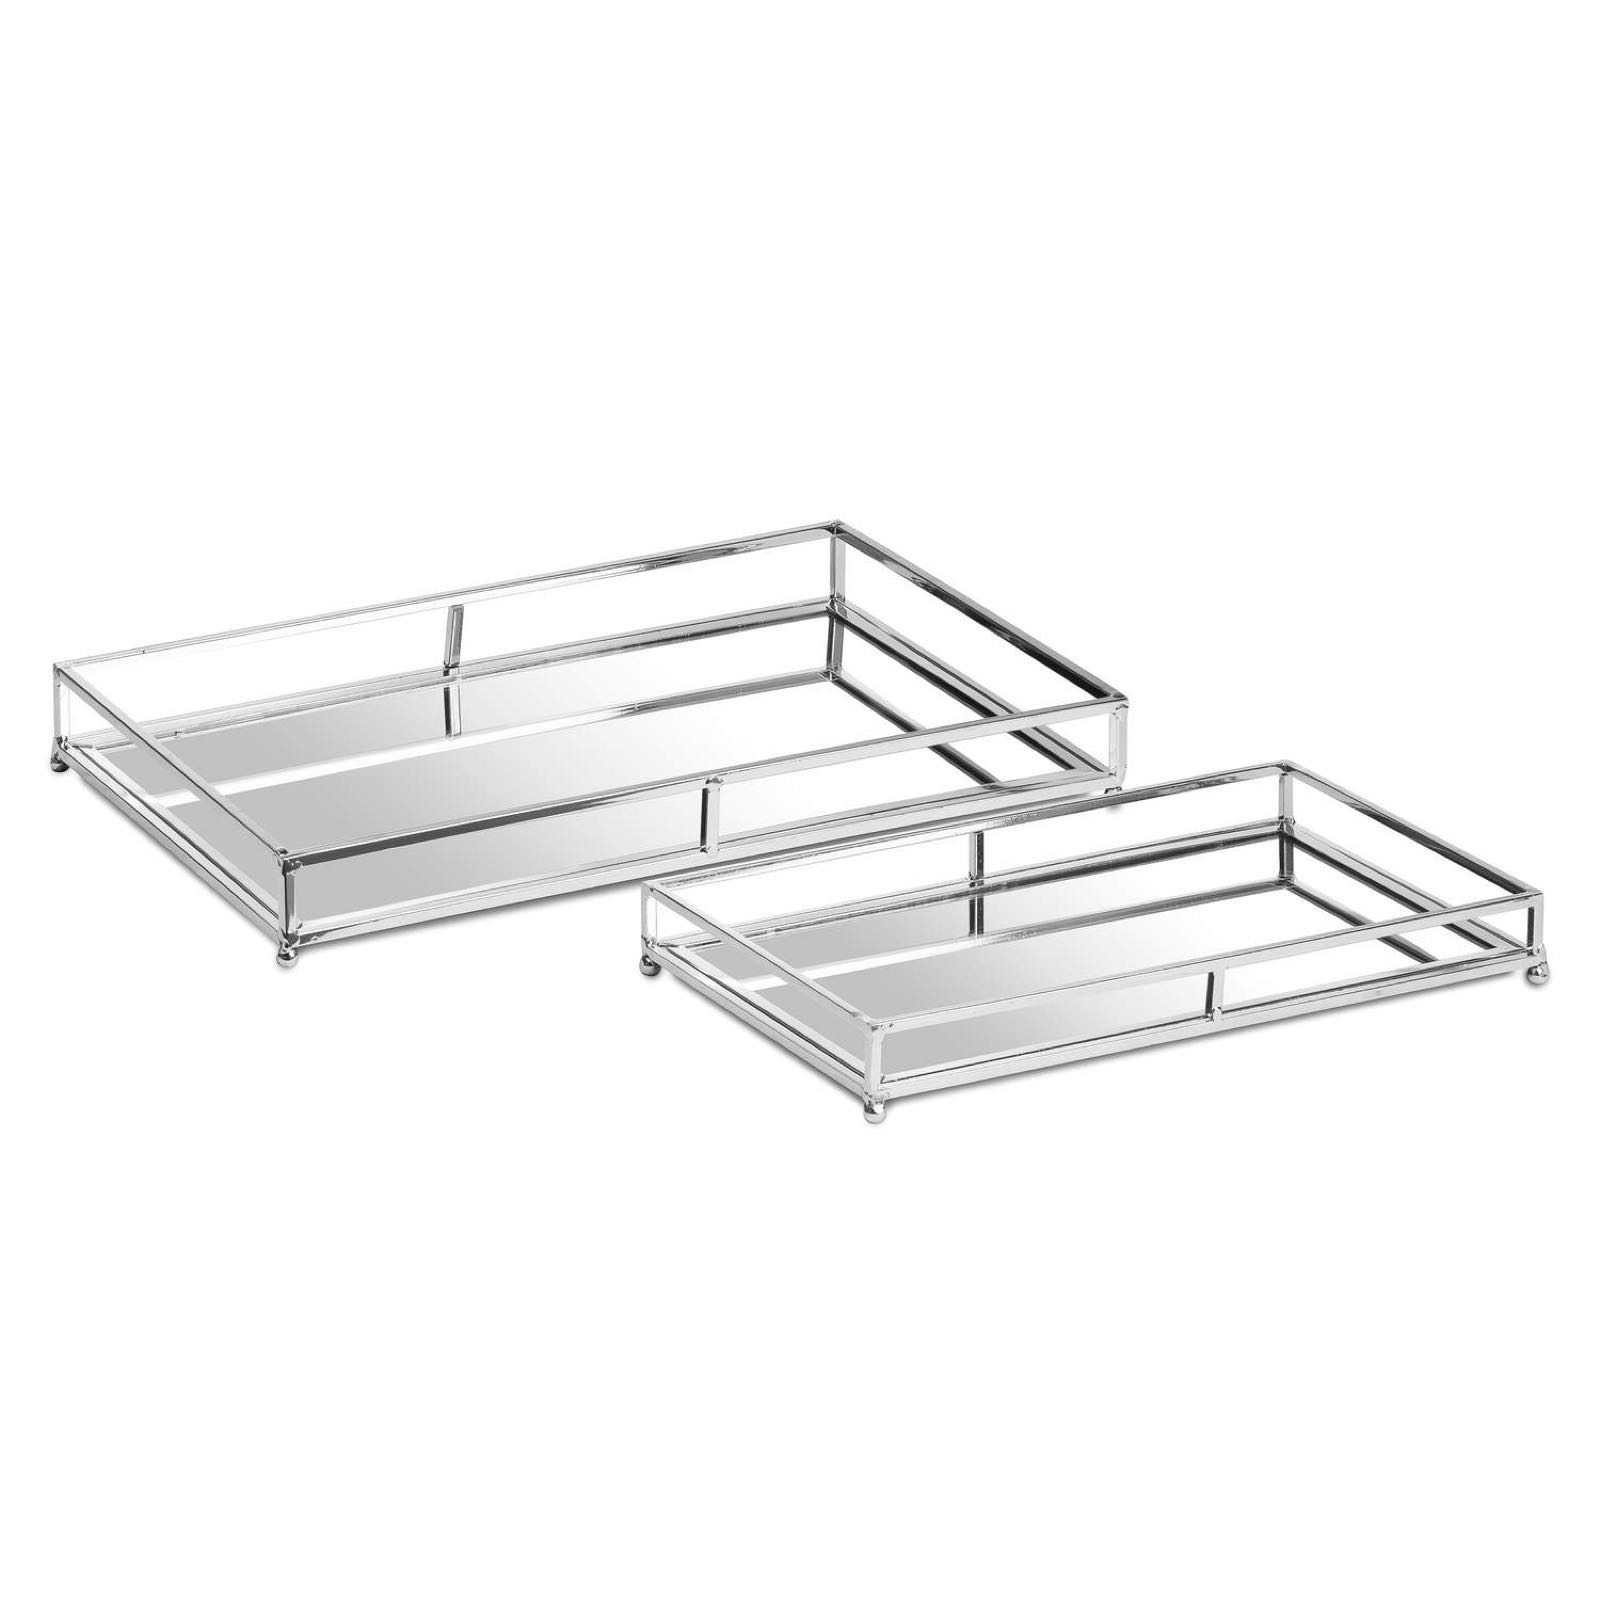 Large silver rectangular tray  49cm x 30cm